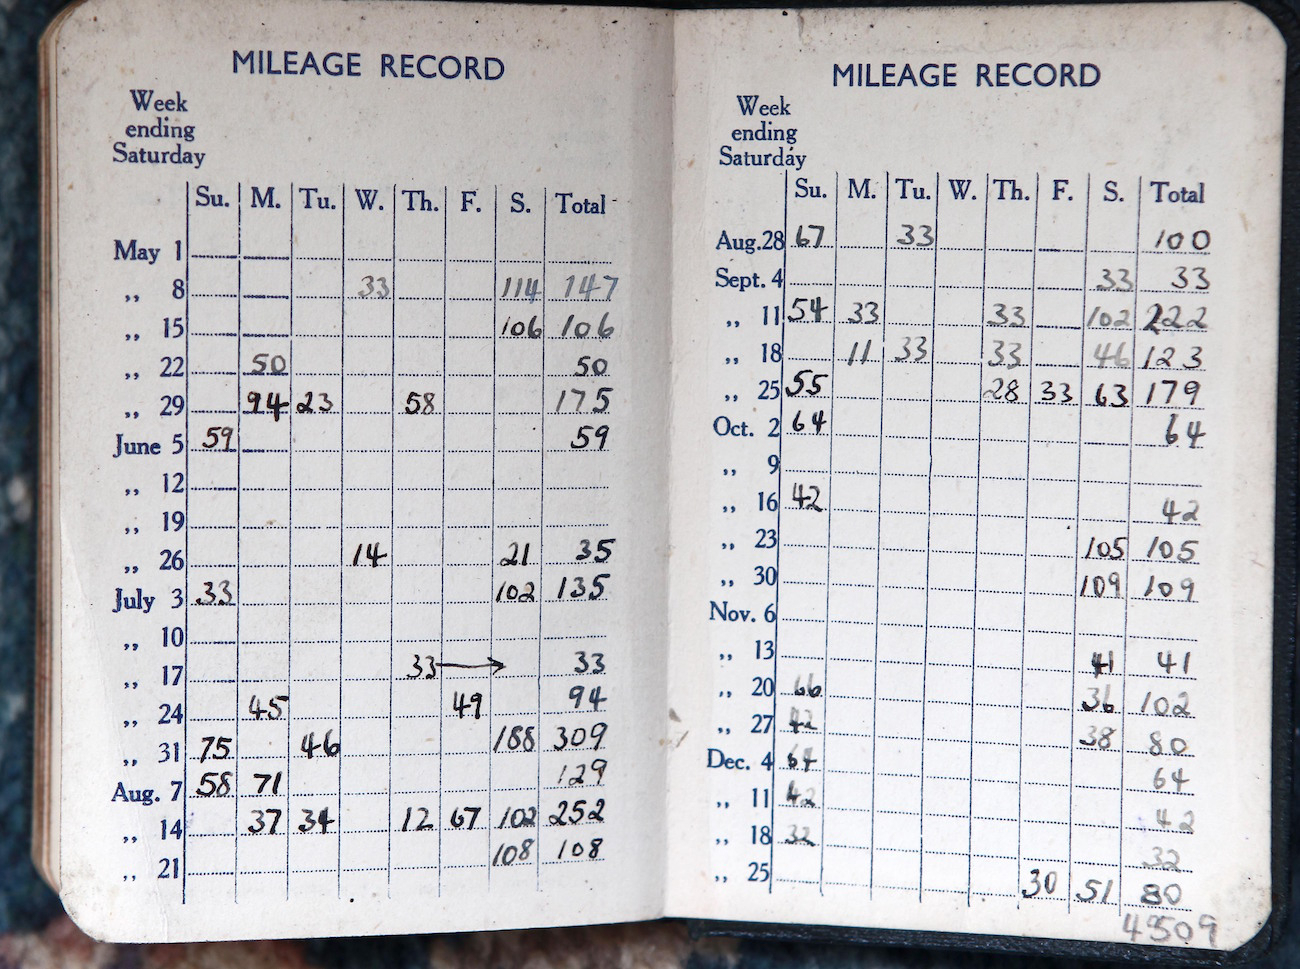 Gas Mileage Tracker Spreadsheet Throughout What Are The Irs Mileage Log Requirements?  Mileiq